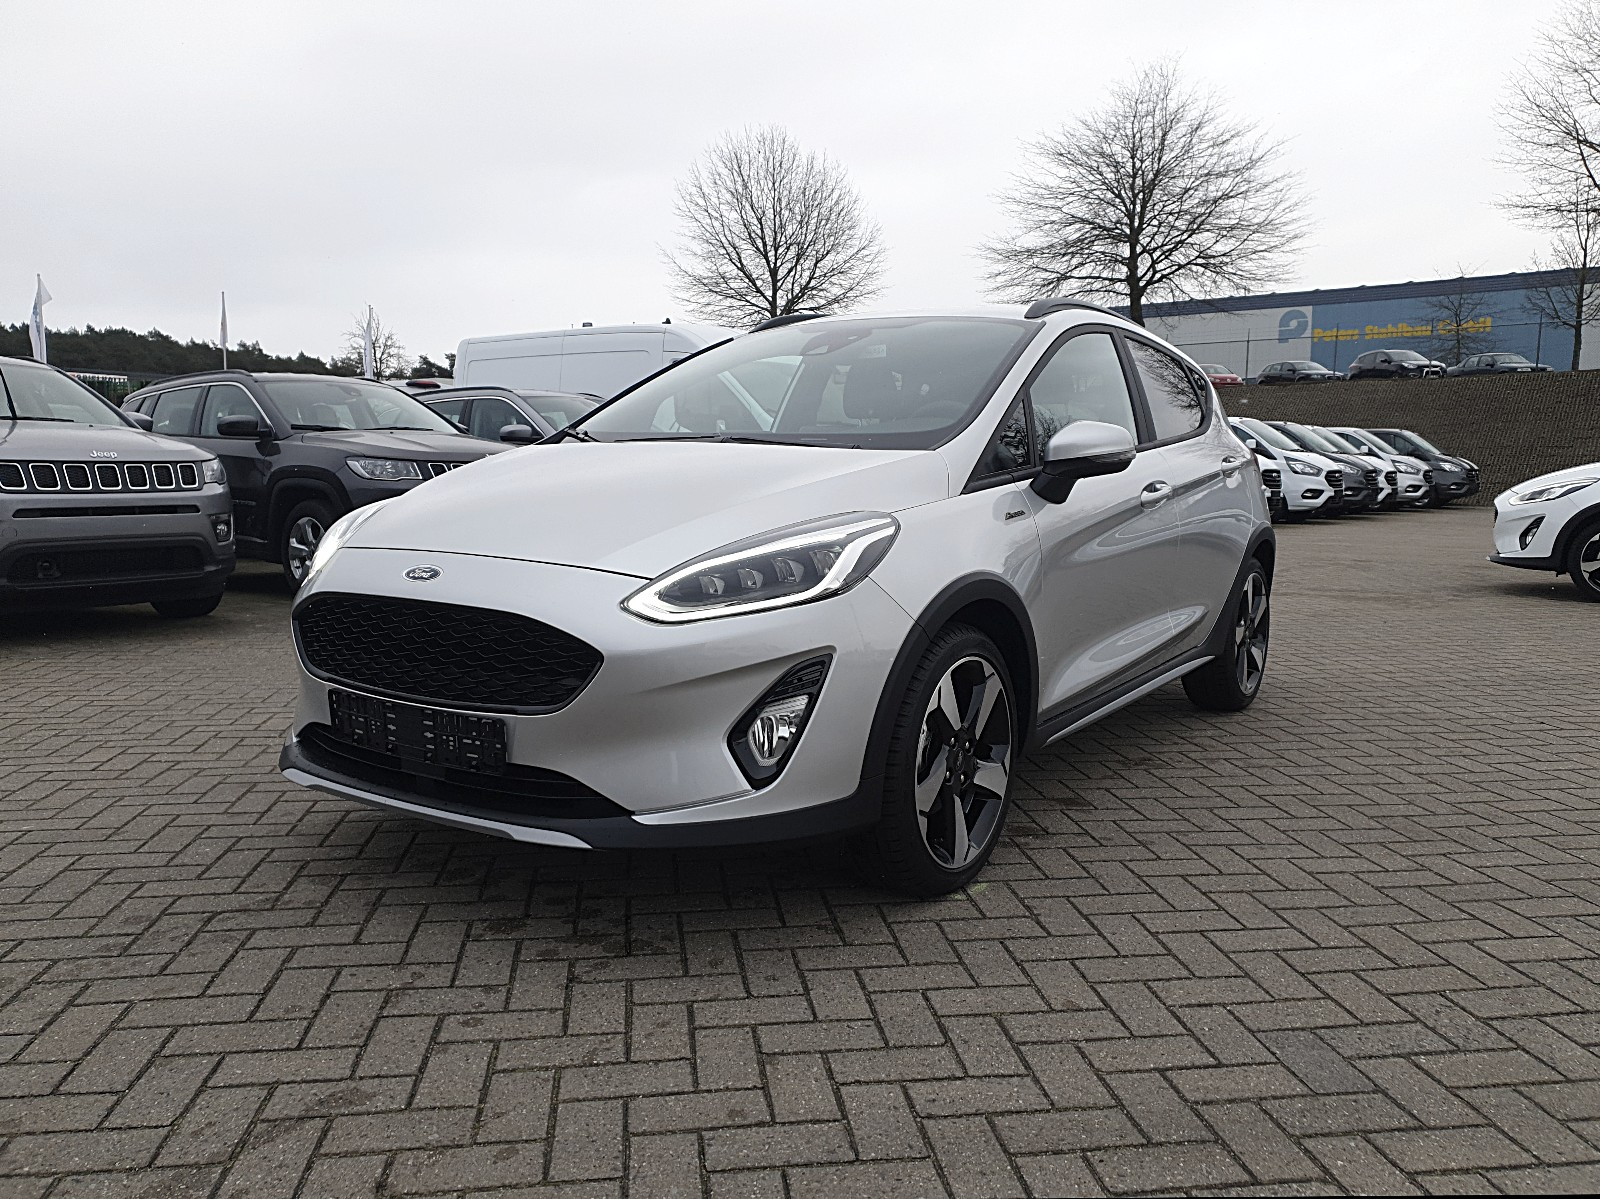 FORD FIESTA Active 1.0 EcoBoost 100PS Sitzheizung Lenkradheizung Voll-LED Kl Autosoft BV, Enschede